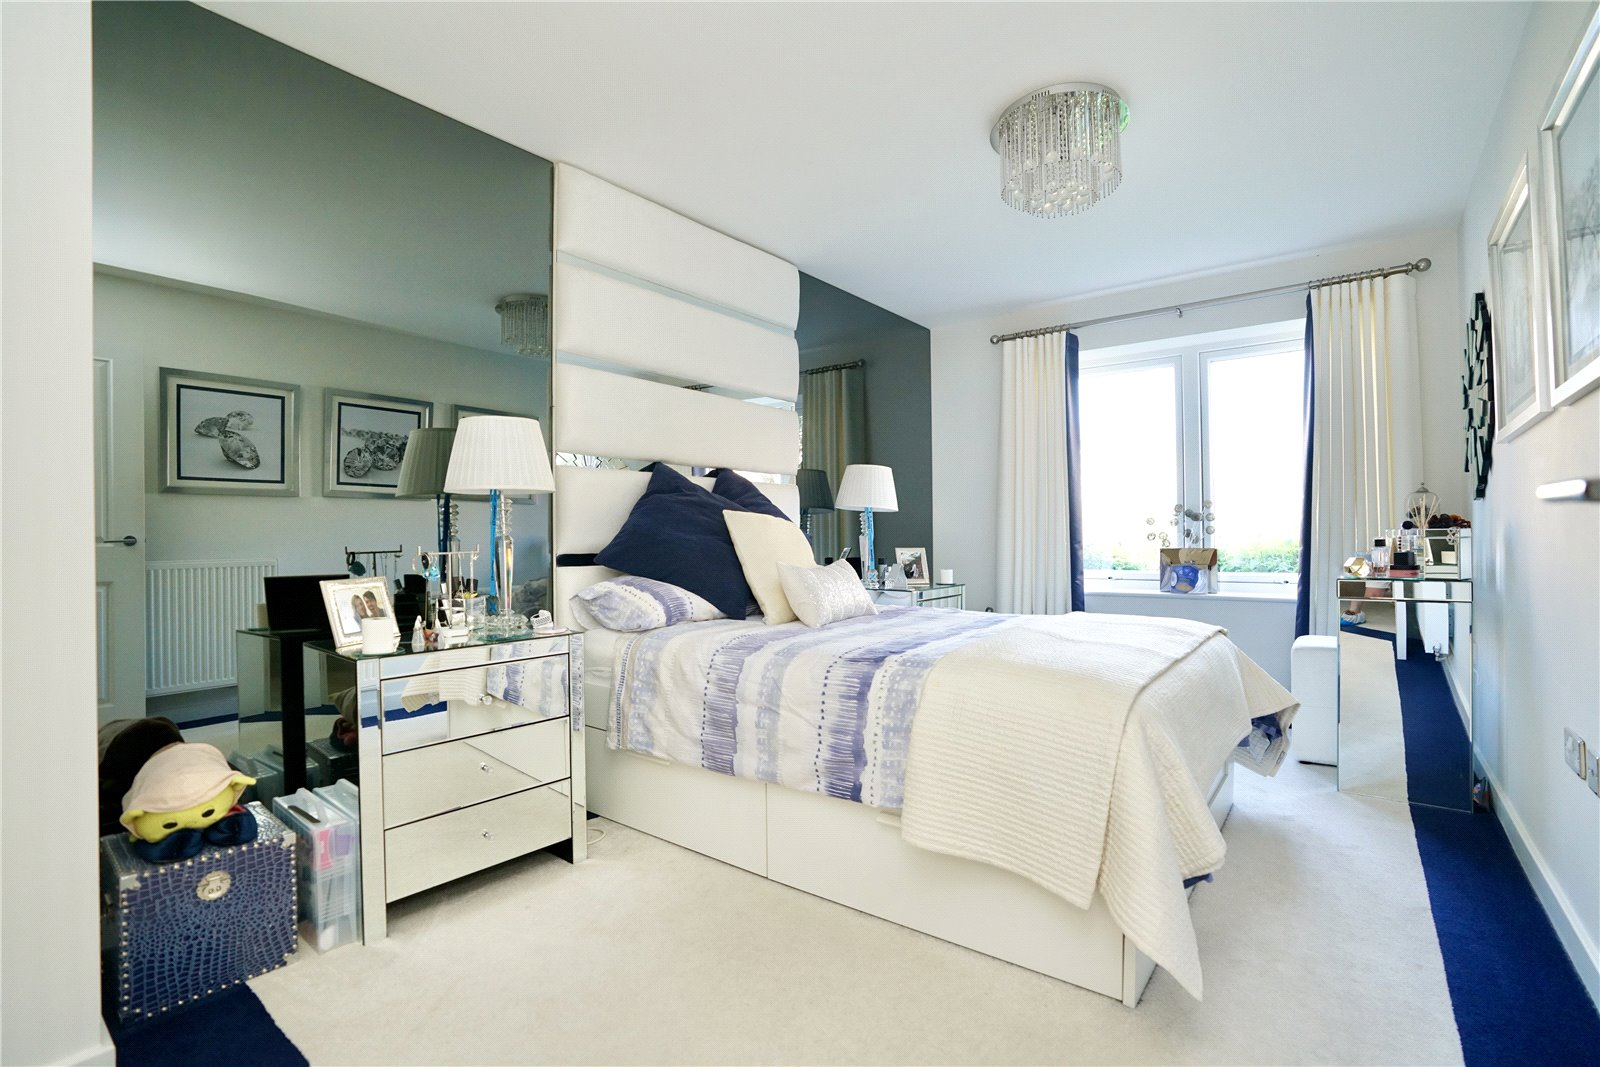 2 bed apartment for sale in Little Paxton, Red Admiral Court, PE19 6BU, PE19